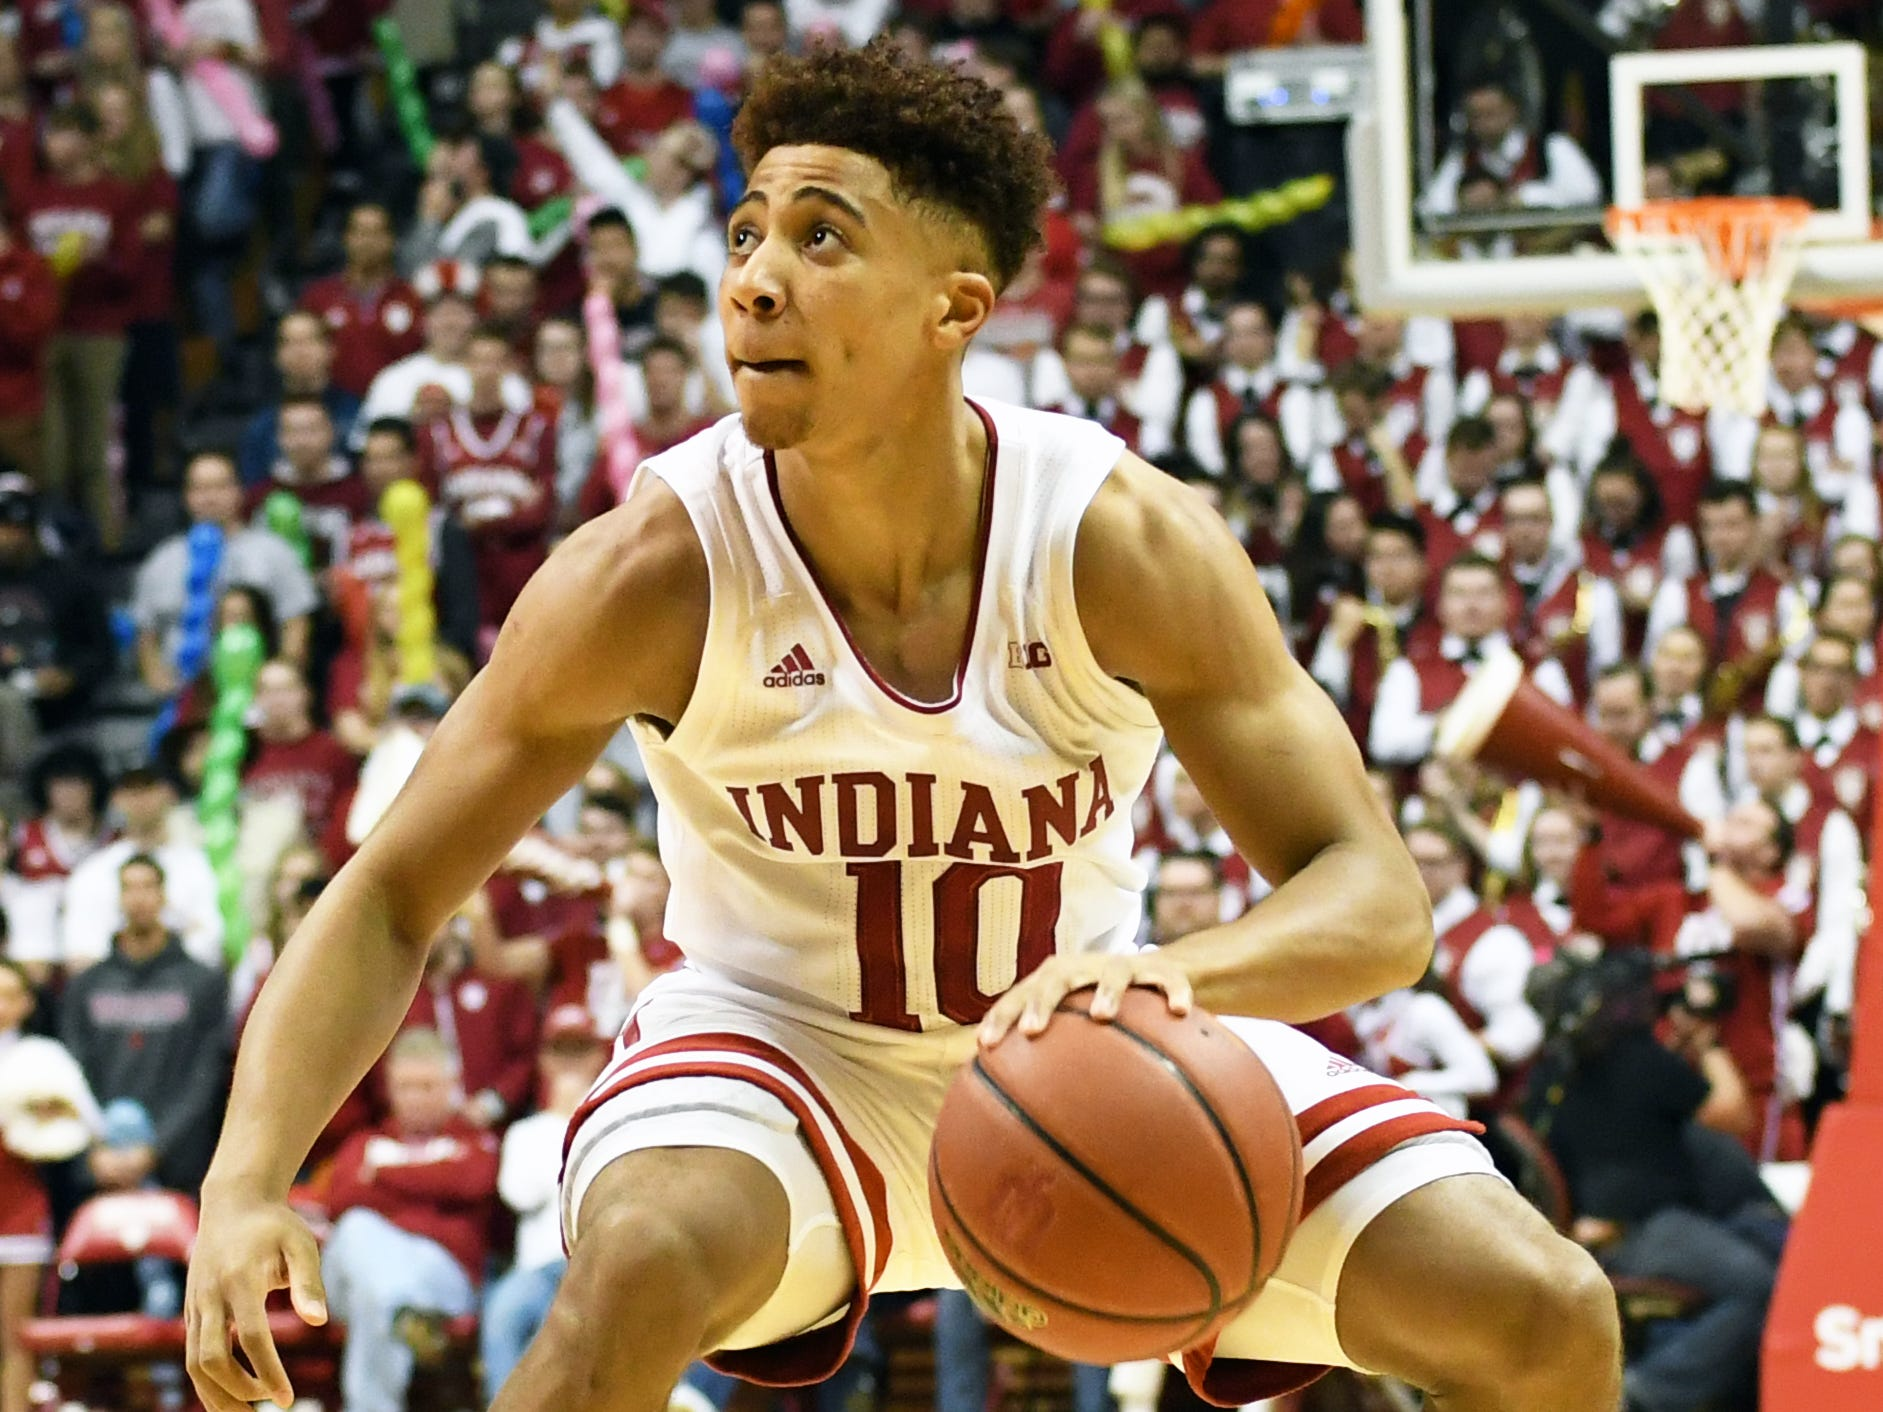 Indiana Hoosiers guard Rob Phinisee (10) looks at the shot clock during the game against Louisville at Simon Skjodt Assembly Hall in Bloomington.